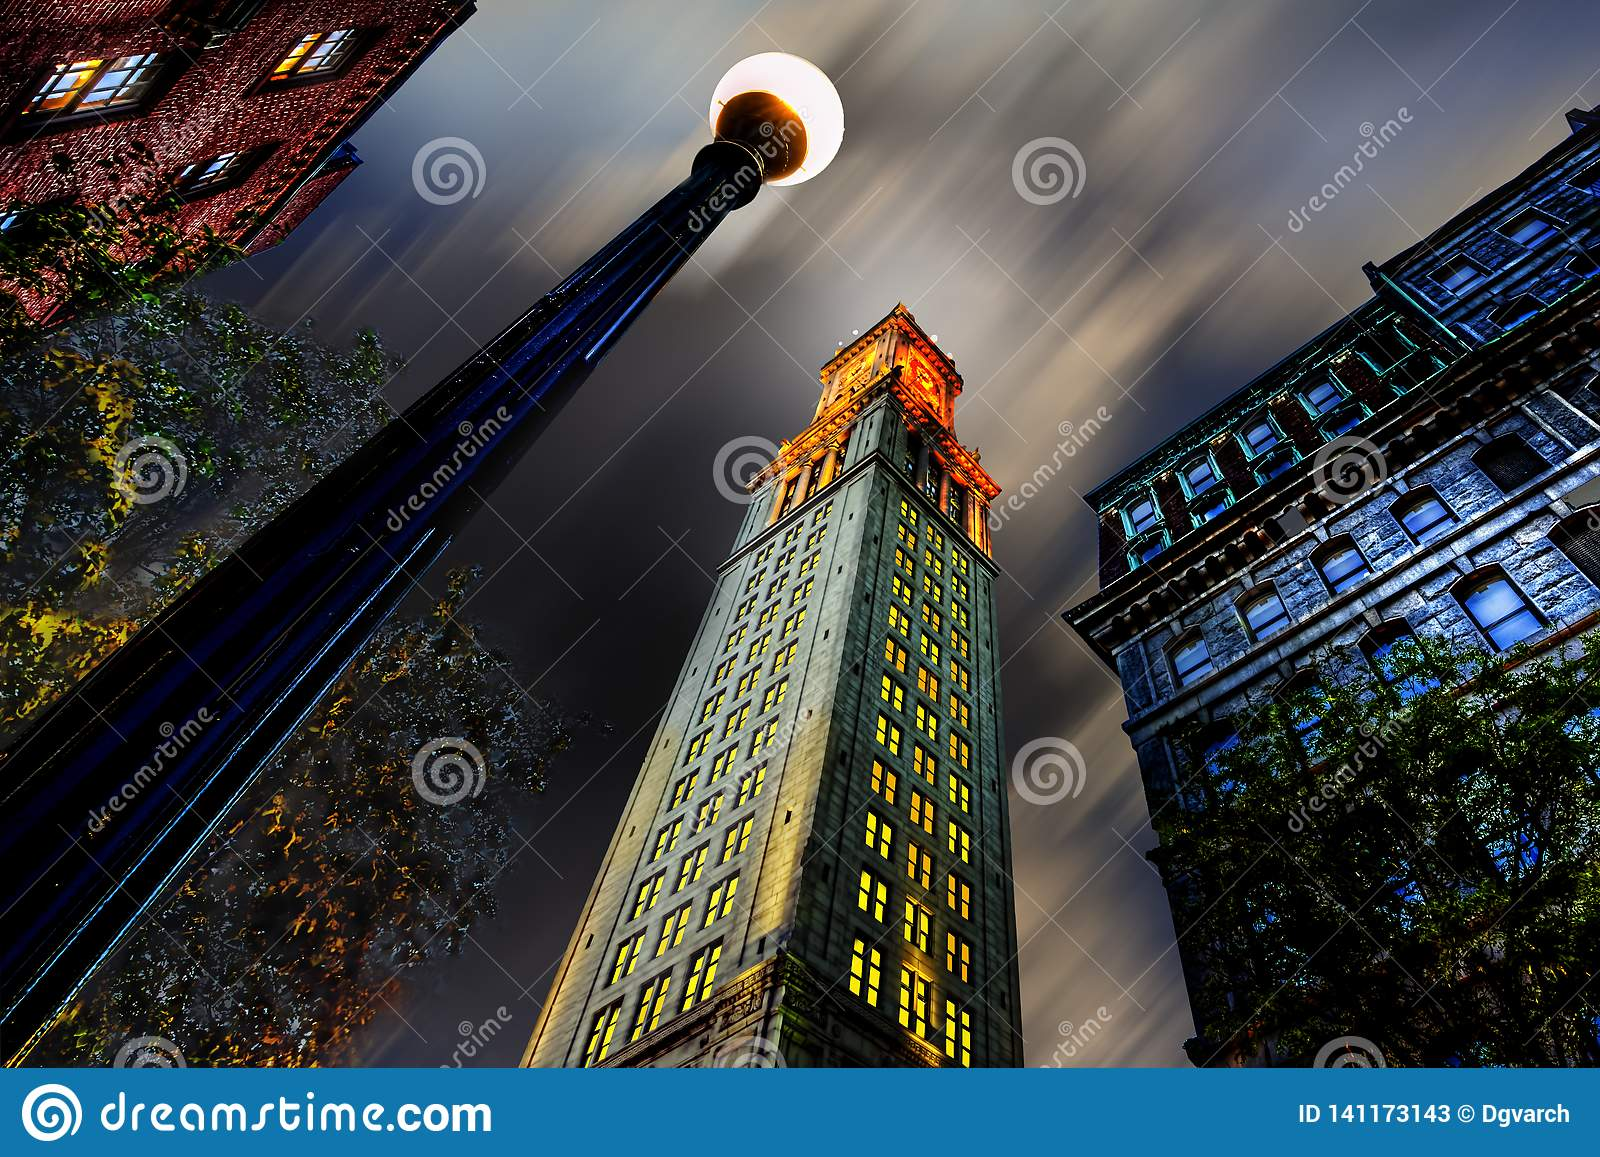 1 570 Custom House Tower Photos Free Royalty Free Stock Photos From Dreamstime